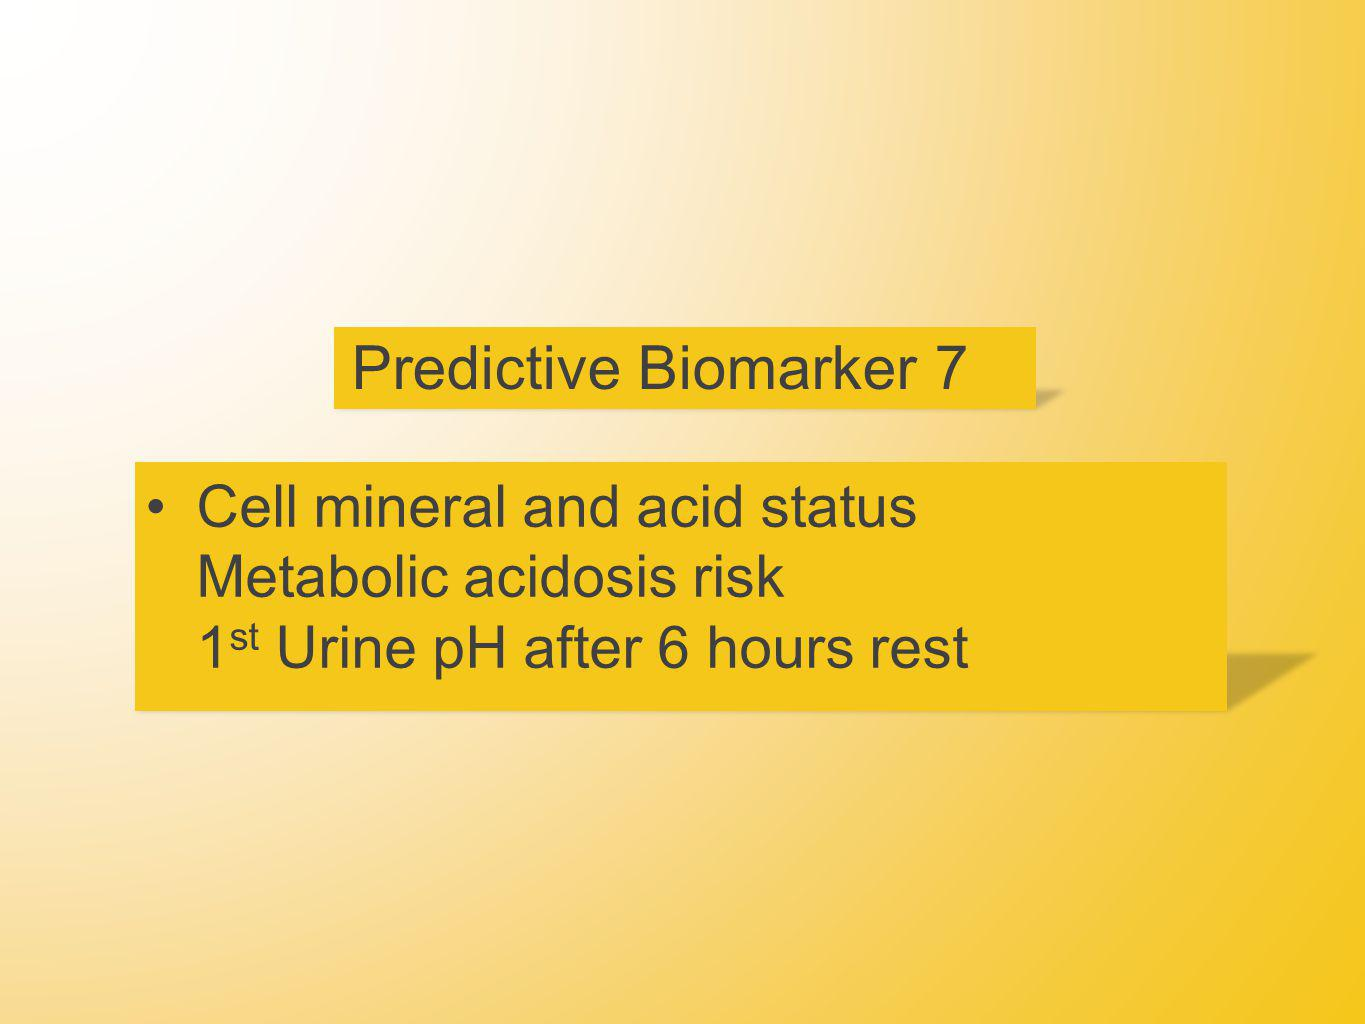 Predictive Biomarker 7 Cell mineral and acid status Metabolic acidosis risk 1 st Urine pH after 6 hours rest